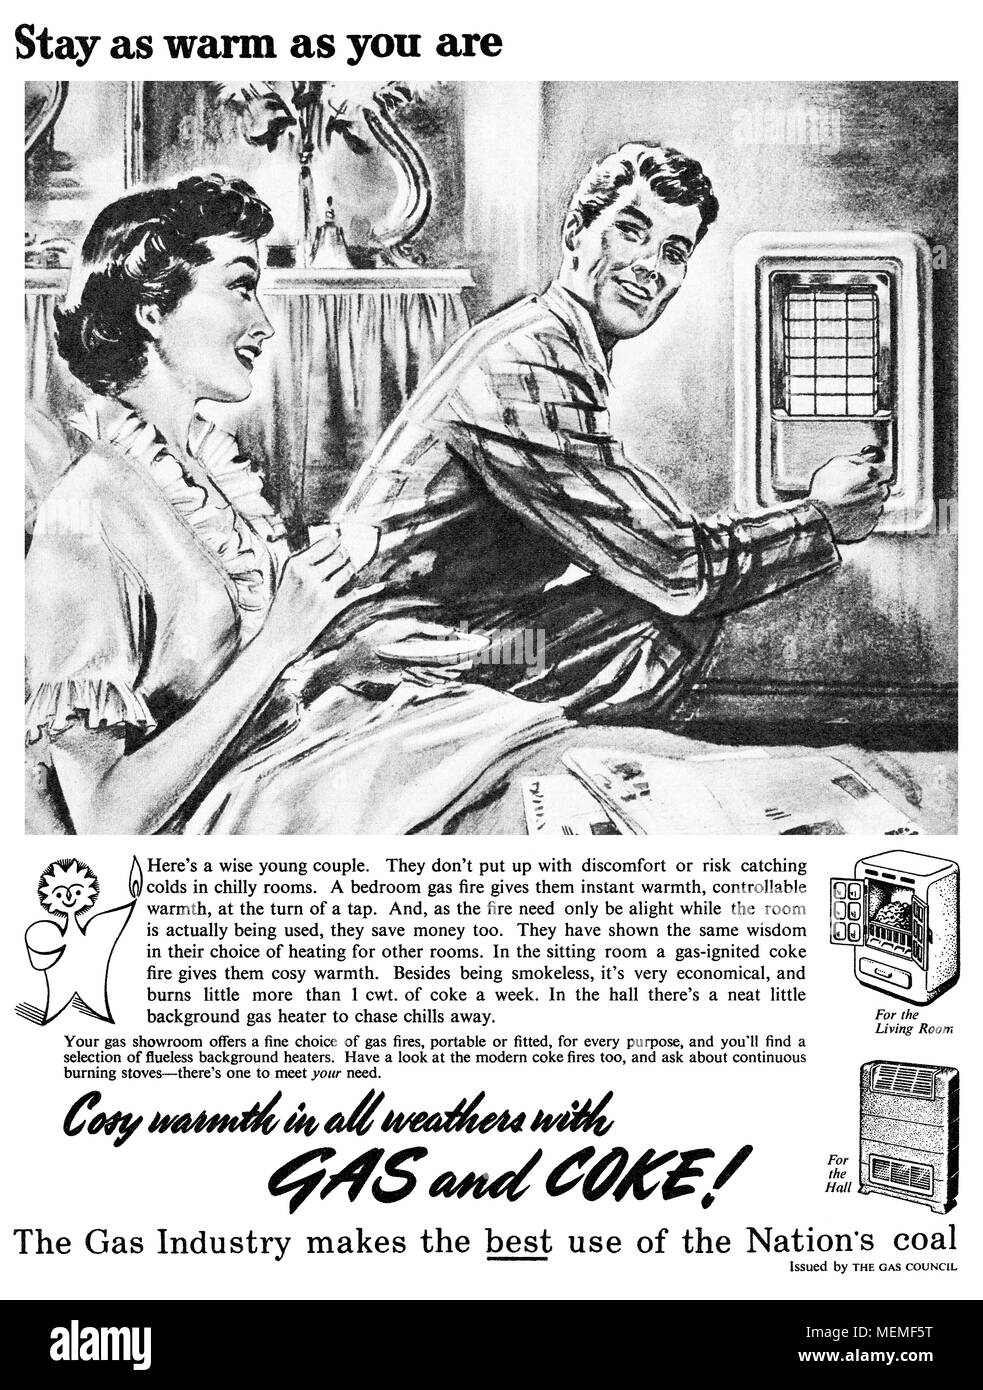 1954 British advertisement for The Gas Council promoting gas fires. Stock Photo